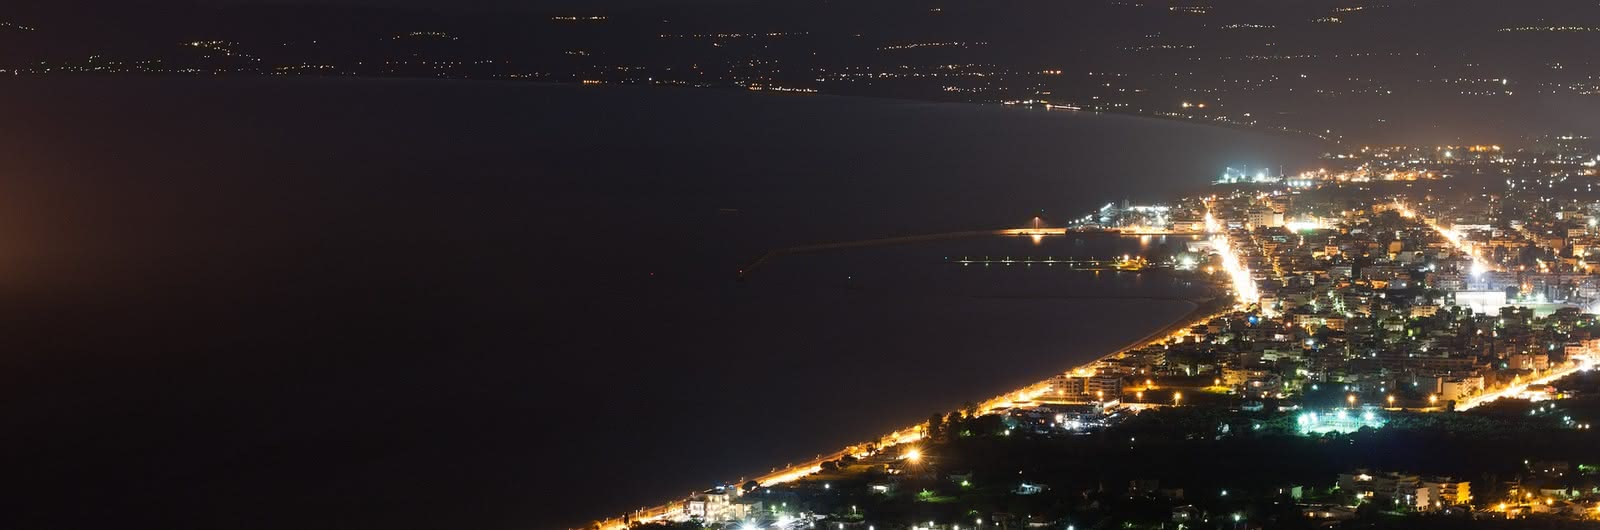 kalamata city header